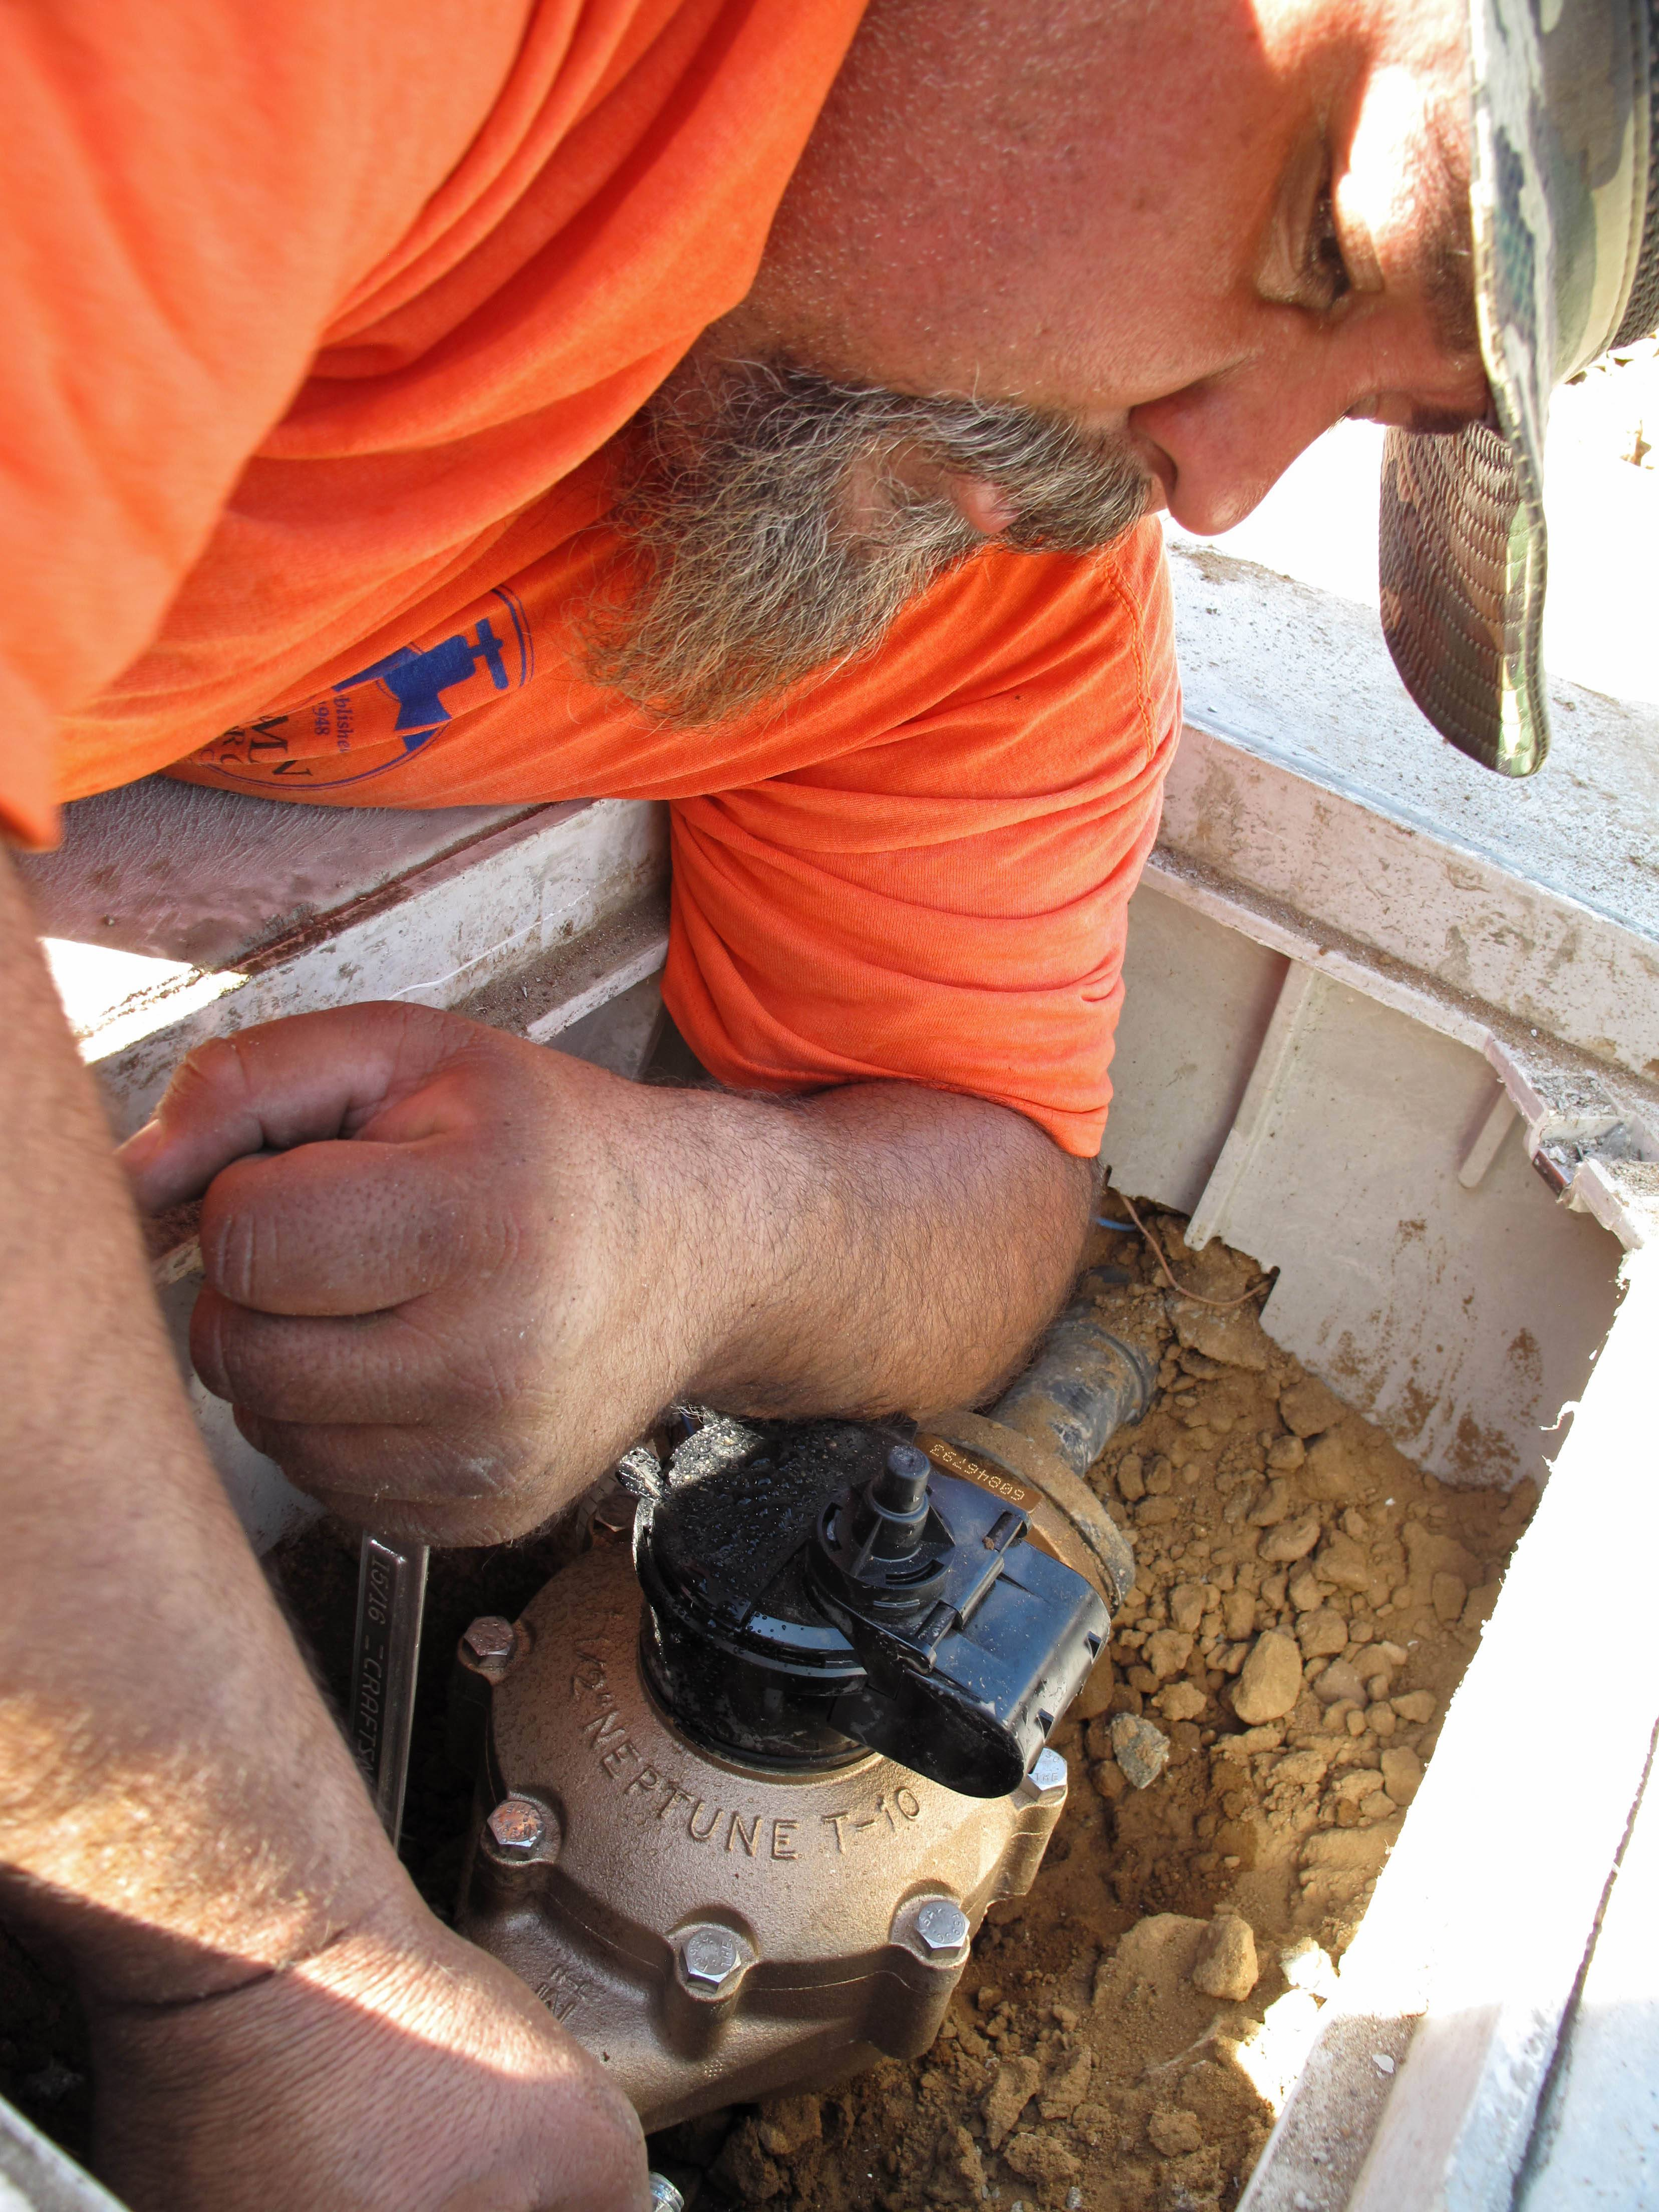 Chris Coronado, a field technician for Bakman Water Co., installs a water meter Thursday on a new home under construction in Fresno, Calif.